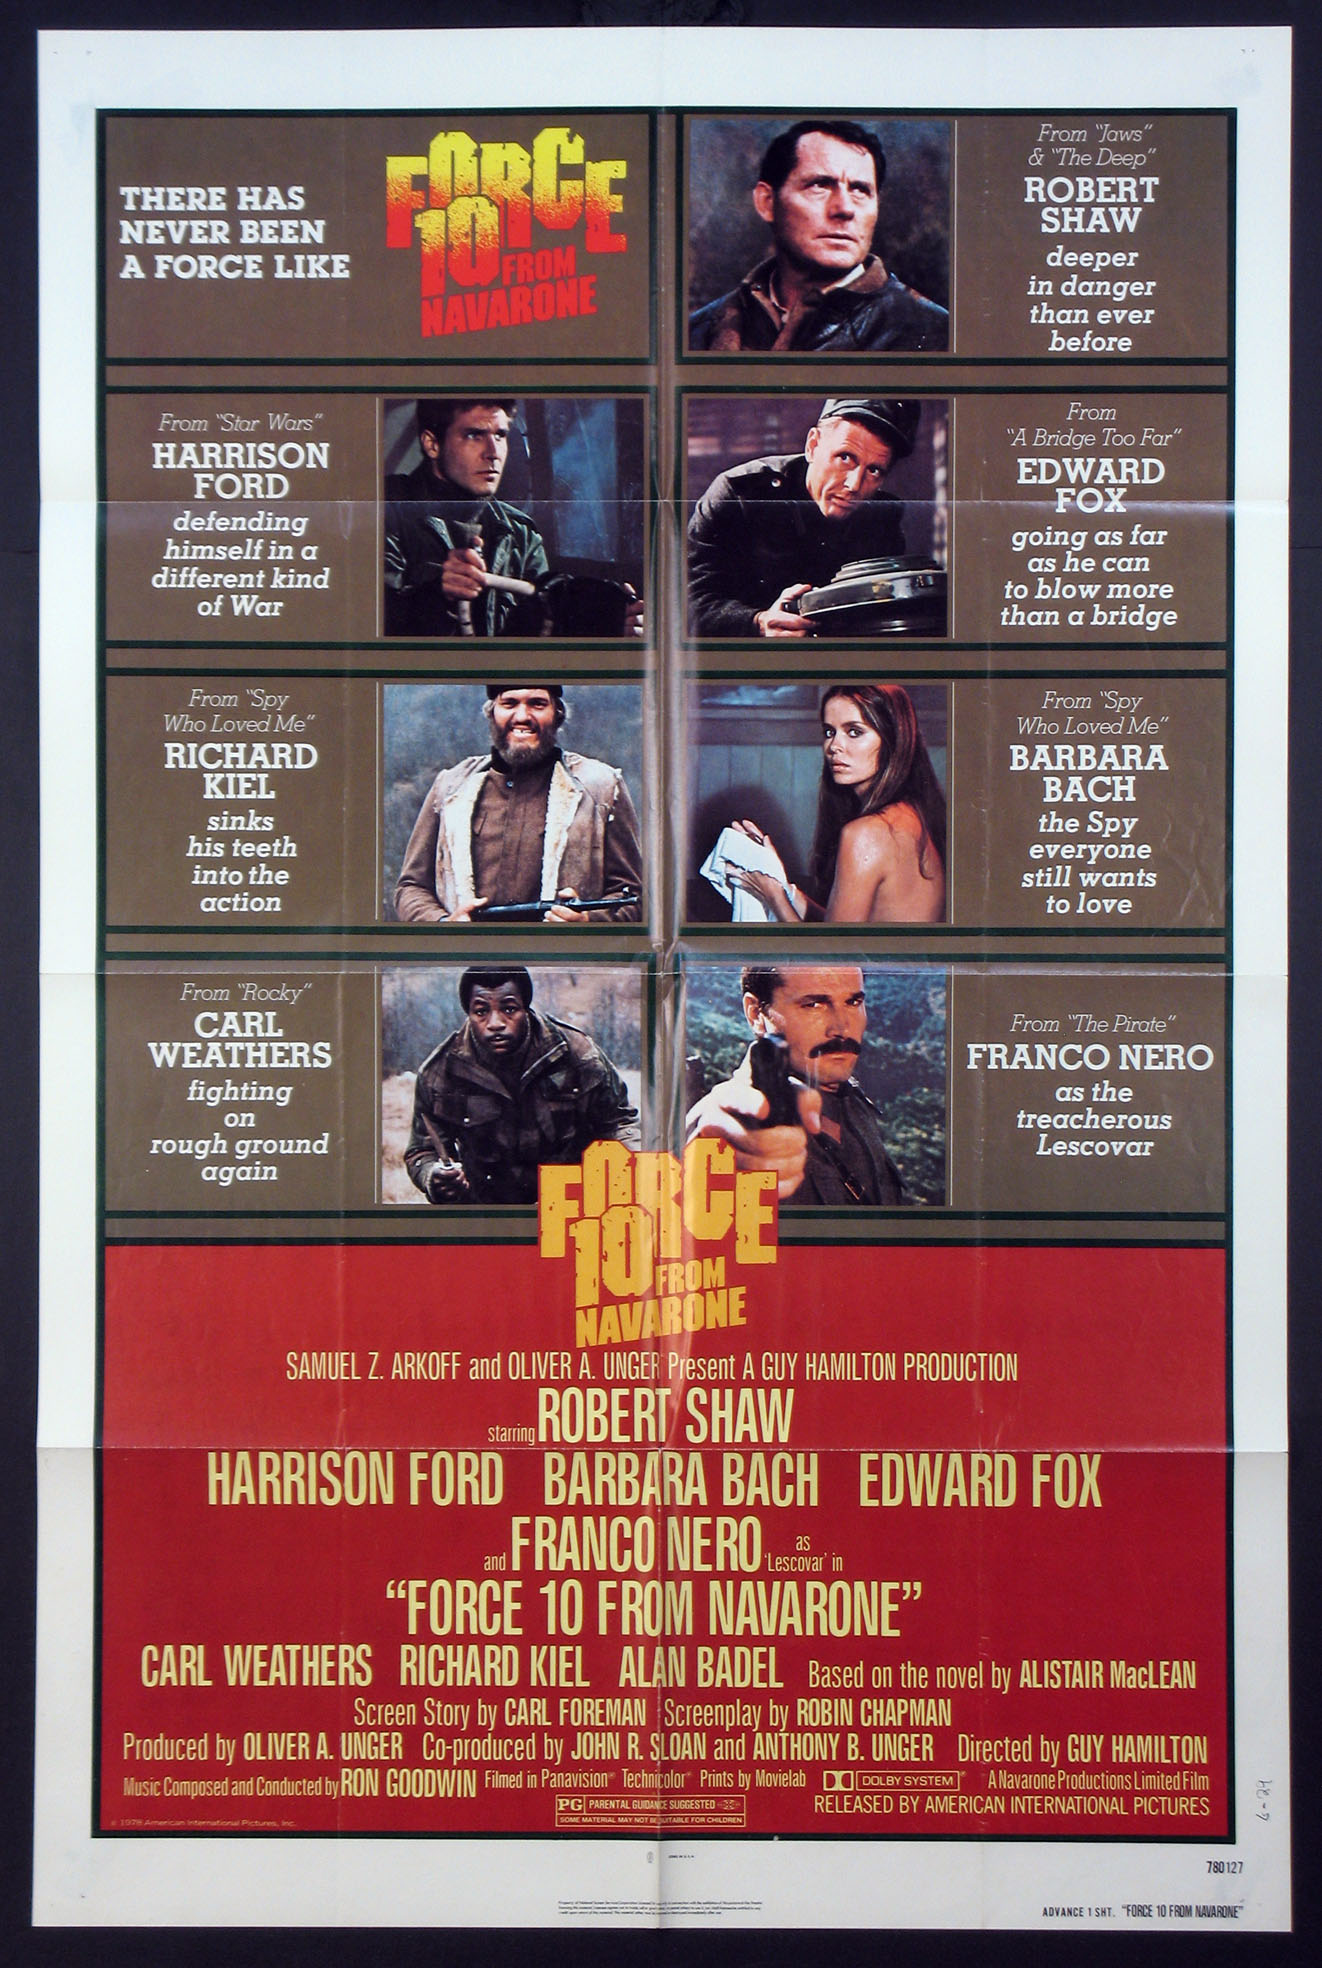 FORCE 10 FROM NAVARONE @ FilmPosters.com